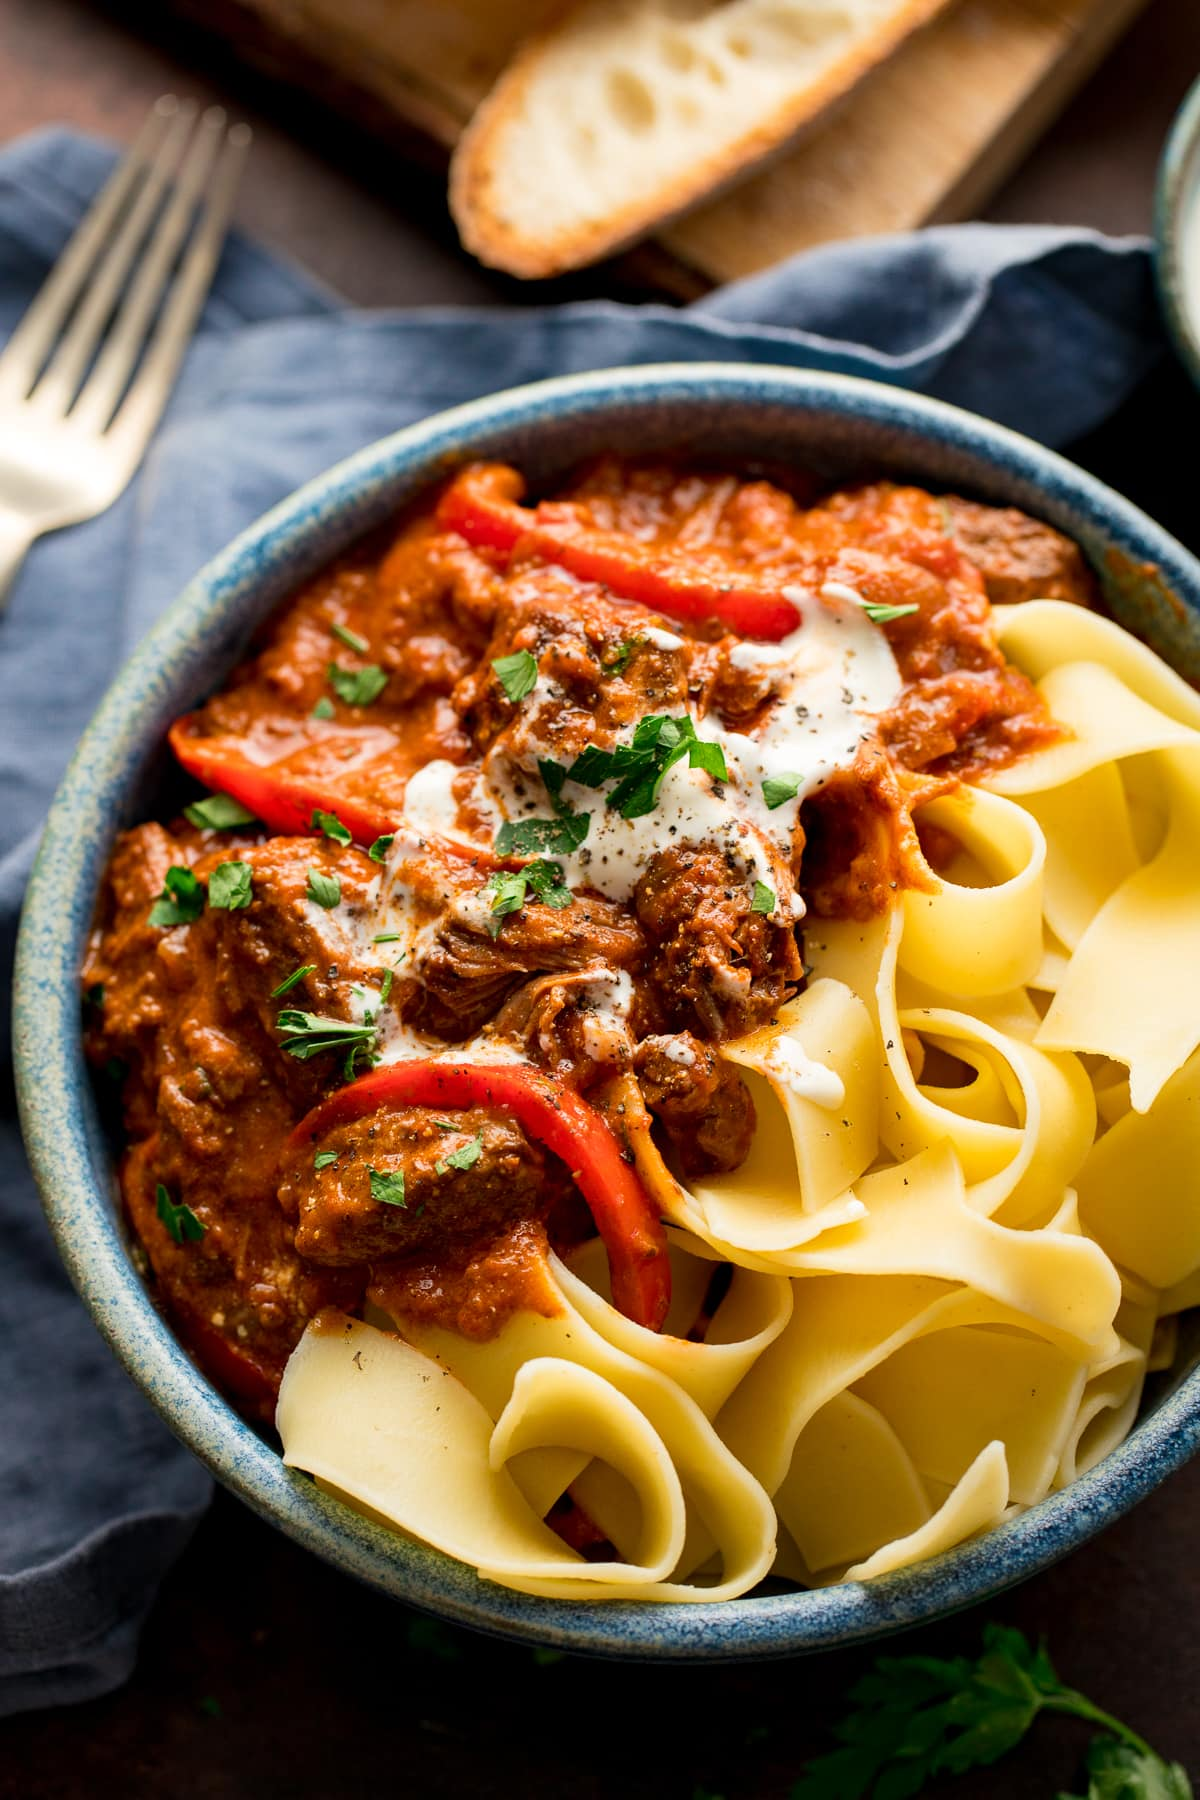 Beef Goulash in a blue bowl with pappadelle pasta